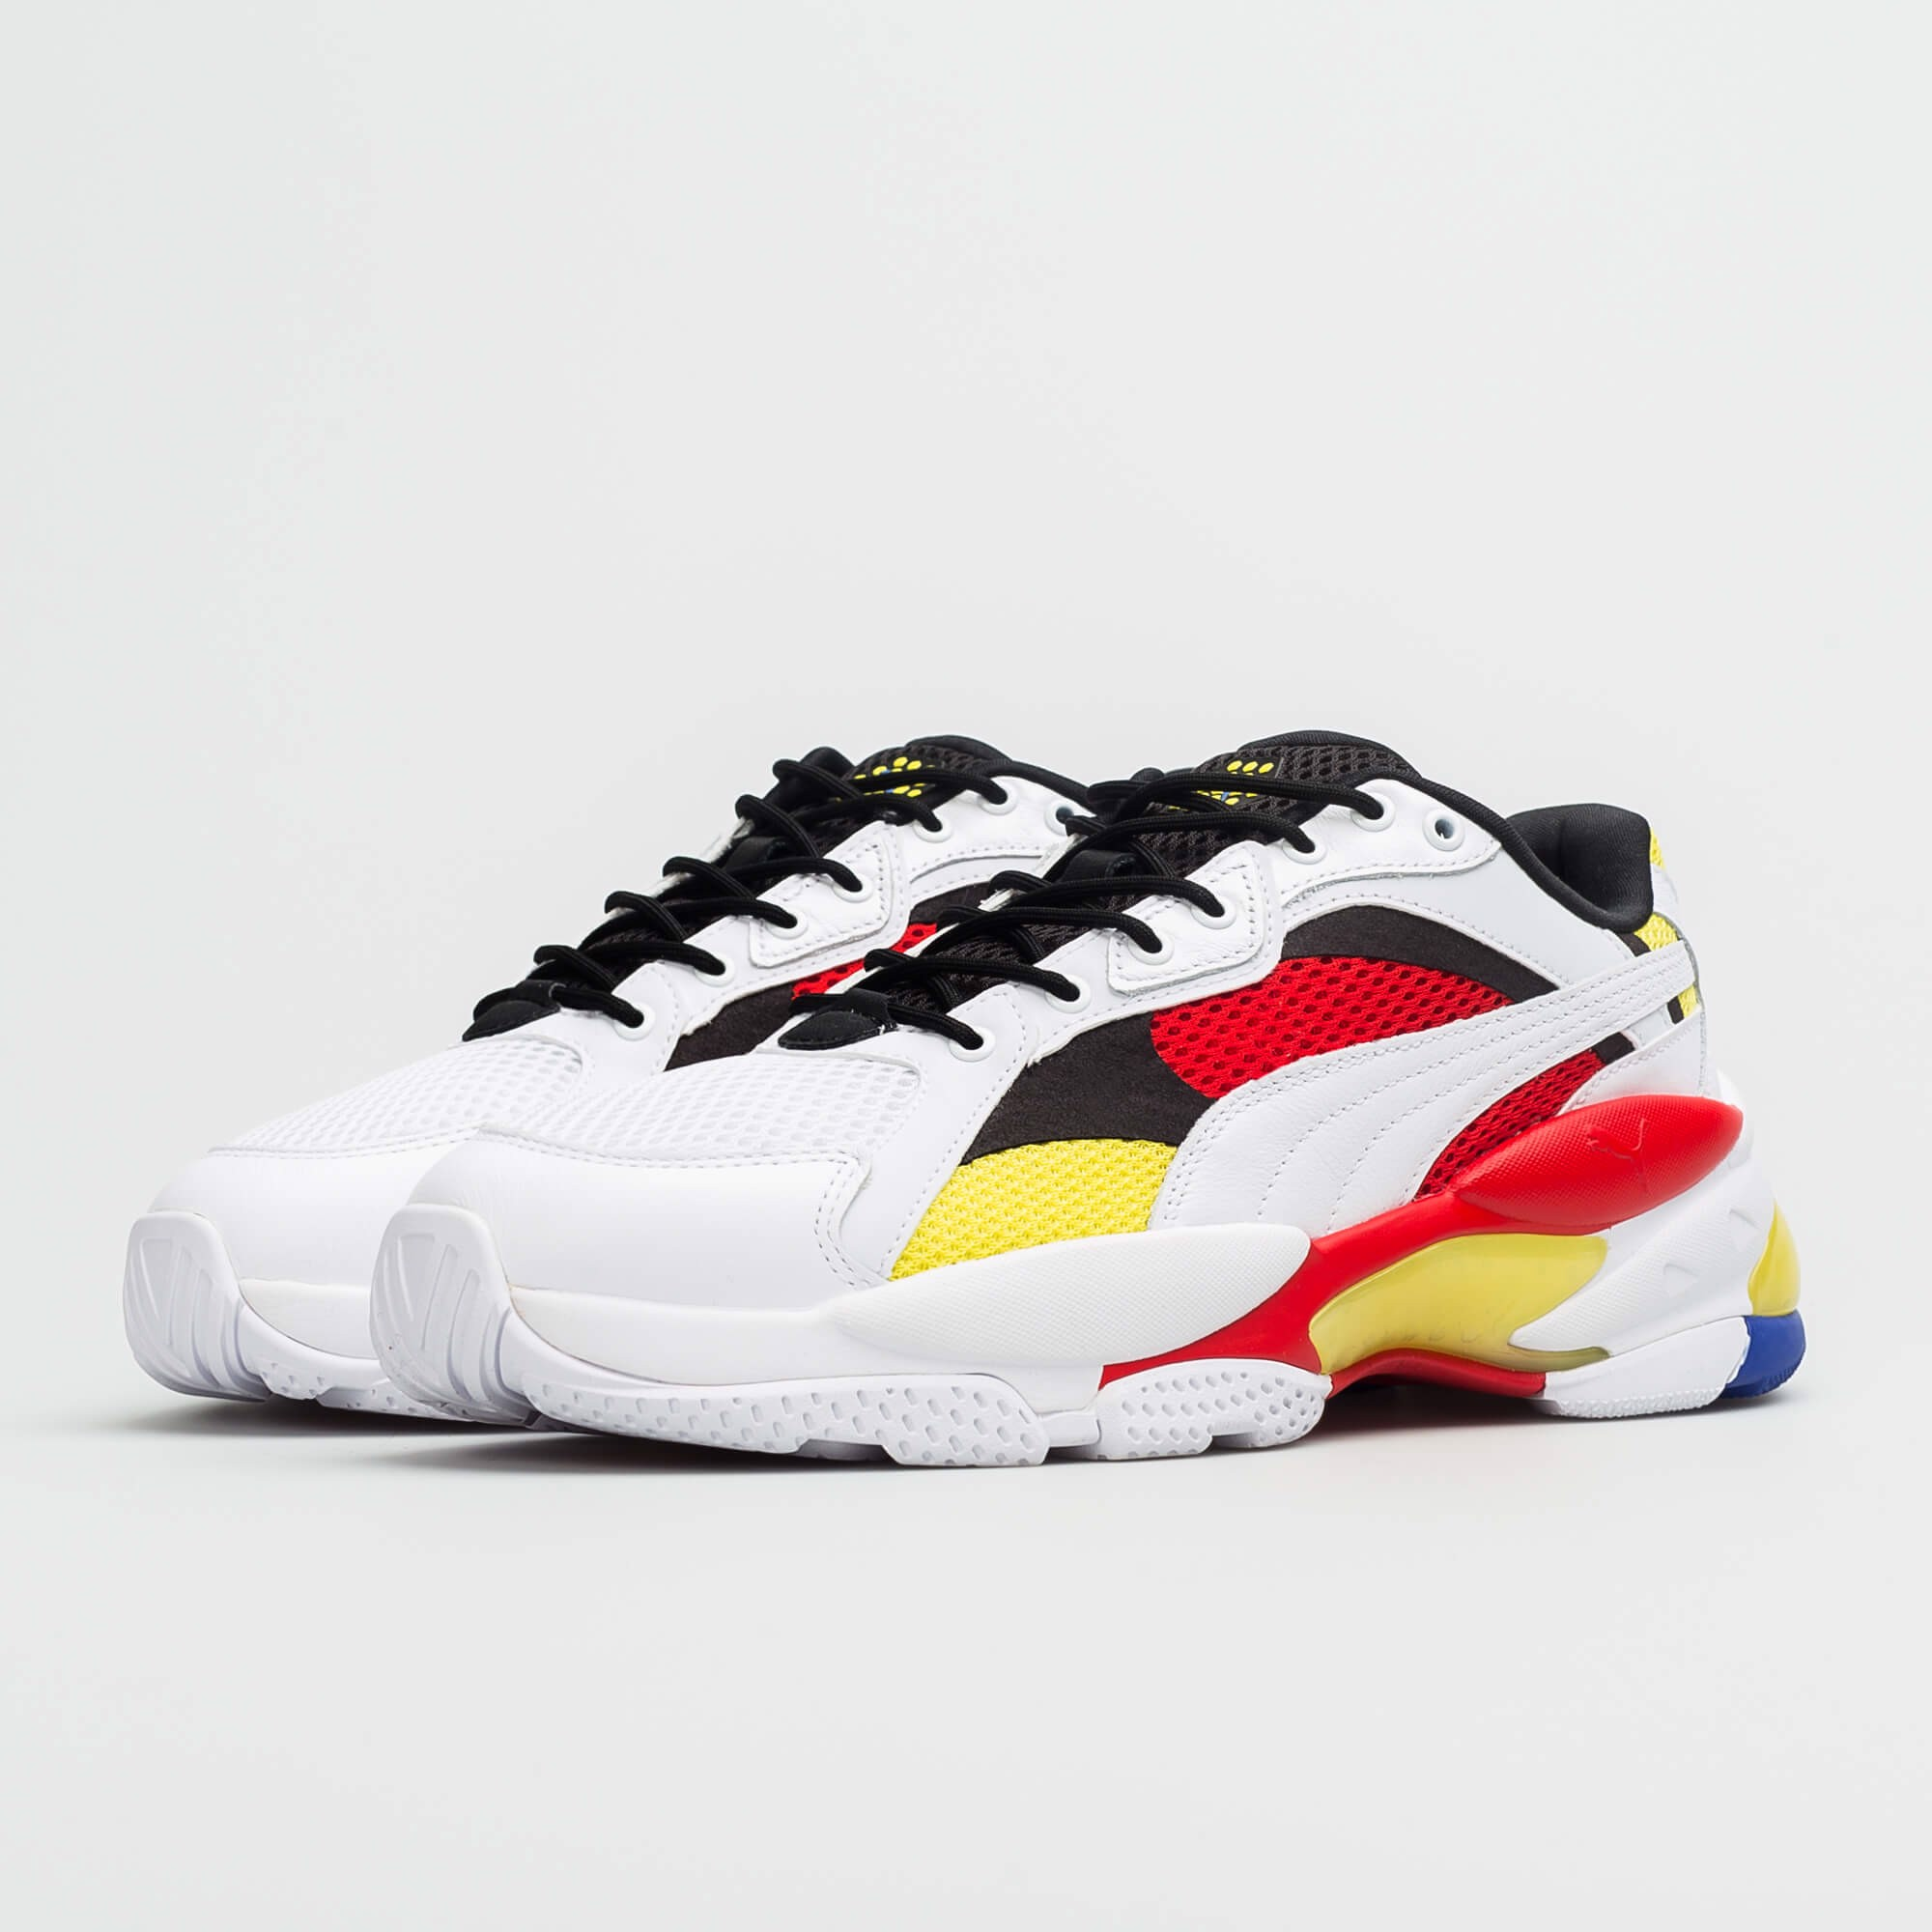 Puma LQDCELL Epsilon 'White High Risk Red' 371909-01